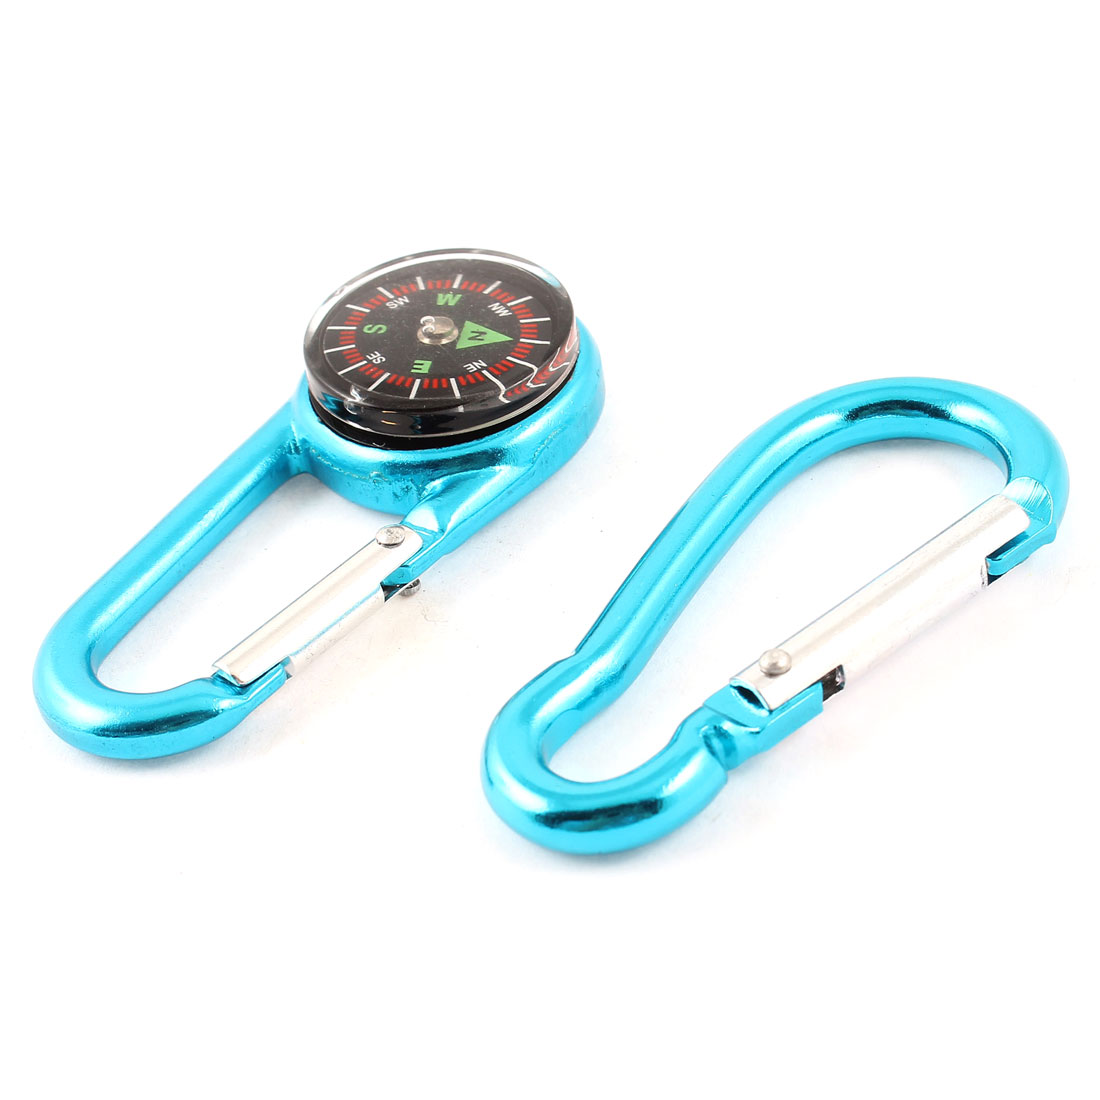 "Hiking Aluminum Alloy Snap Hook Compass Carabiner Teal Blue 2.7"" Long 2 in 1"